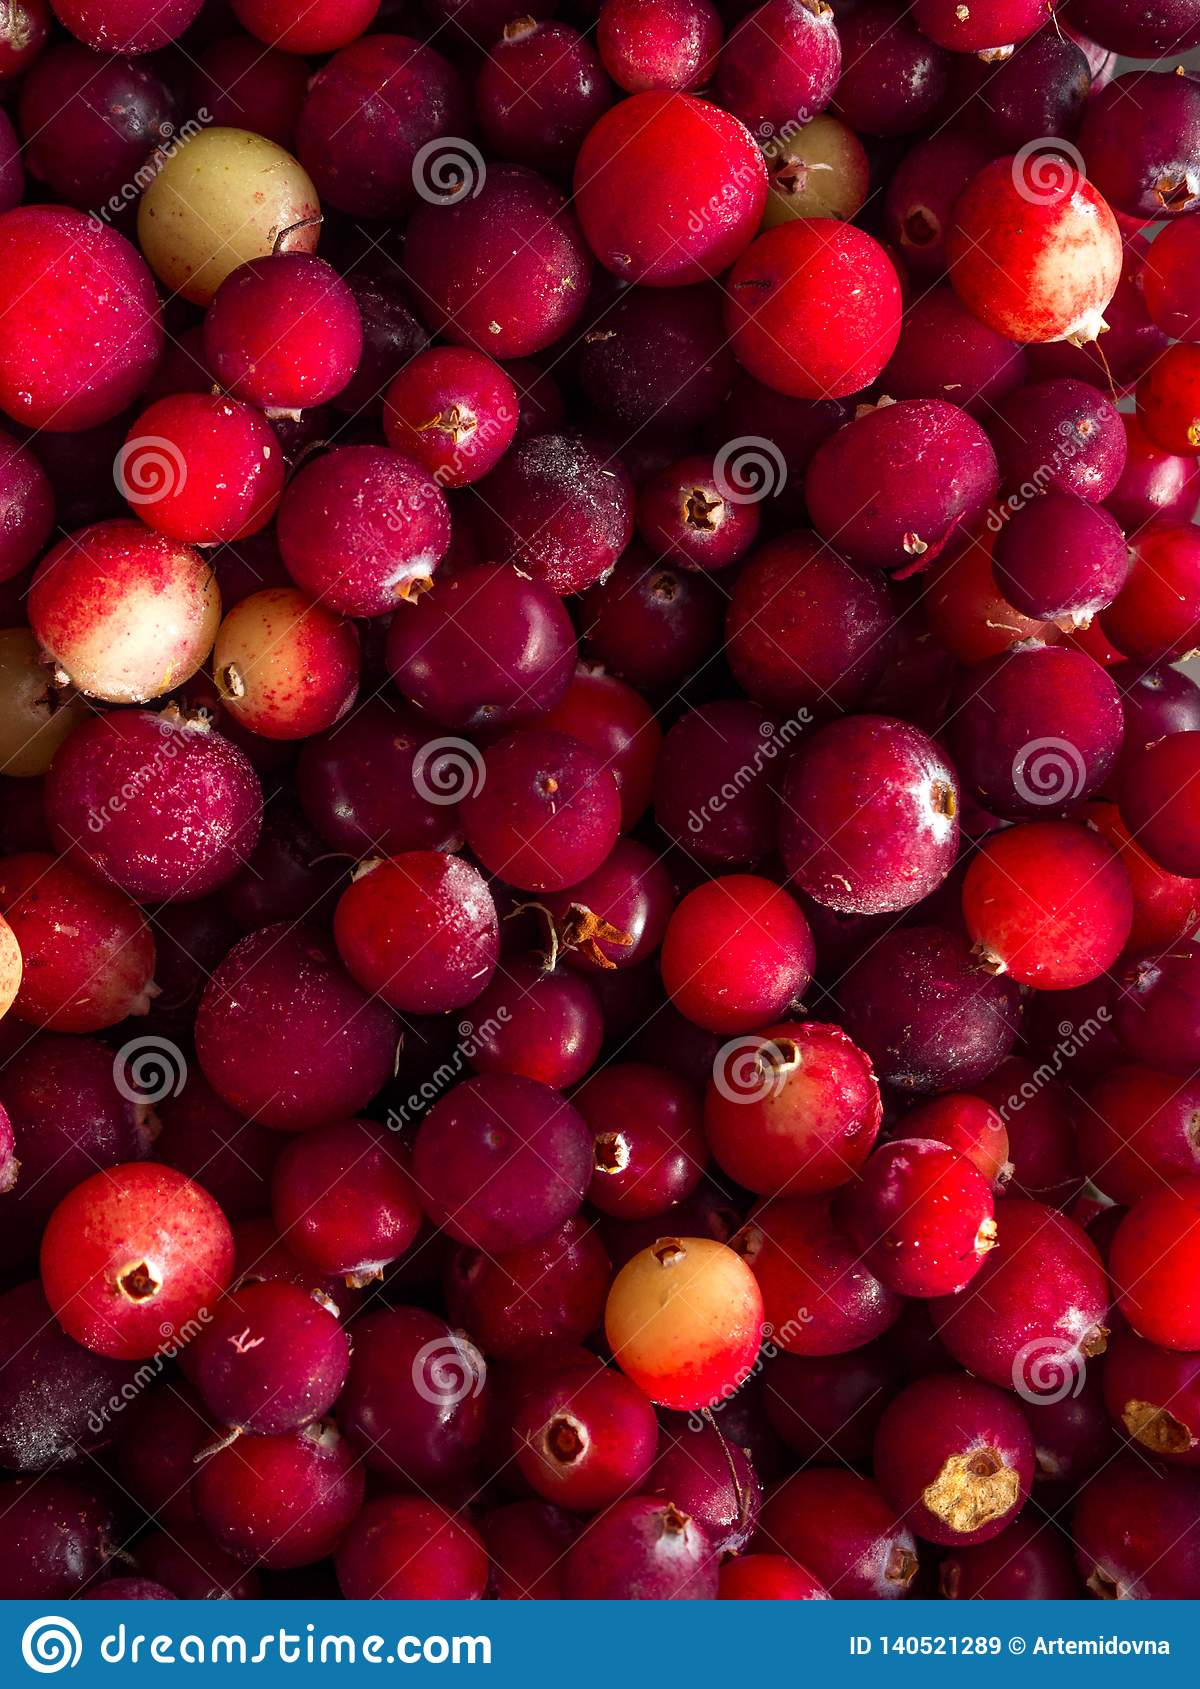 Cranberry. Cranberry background. Food background